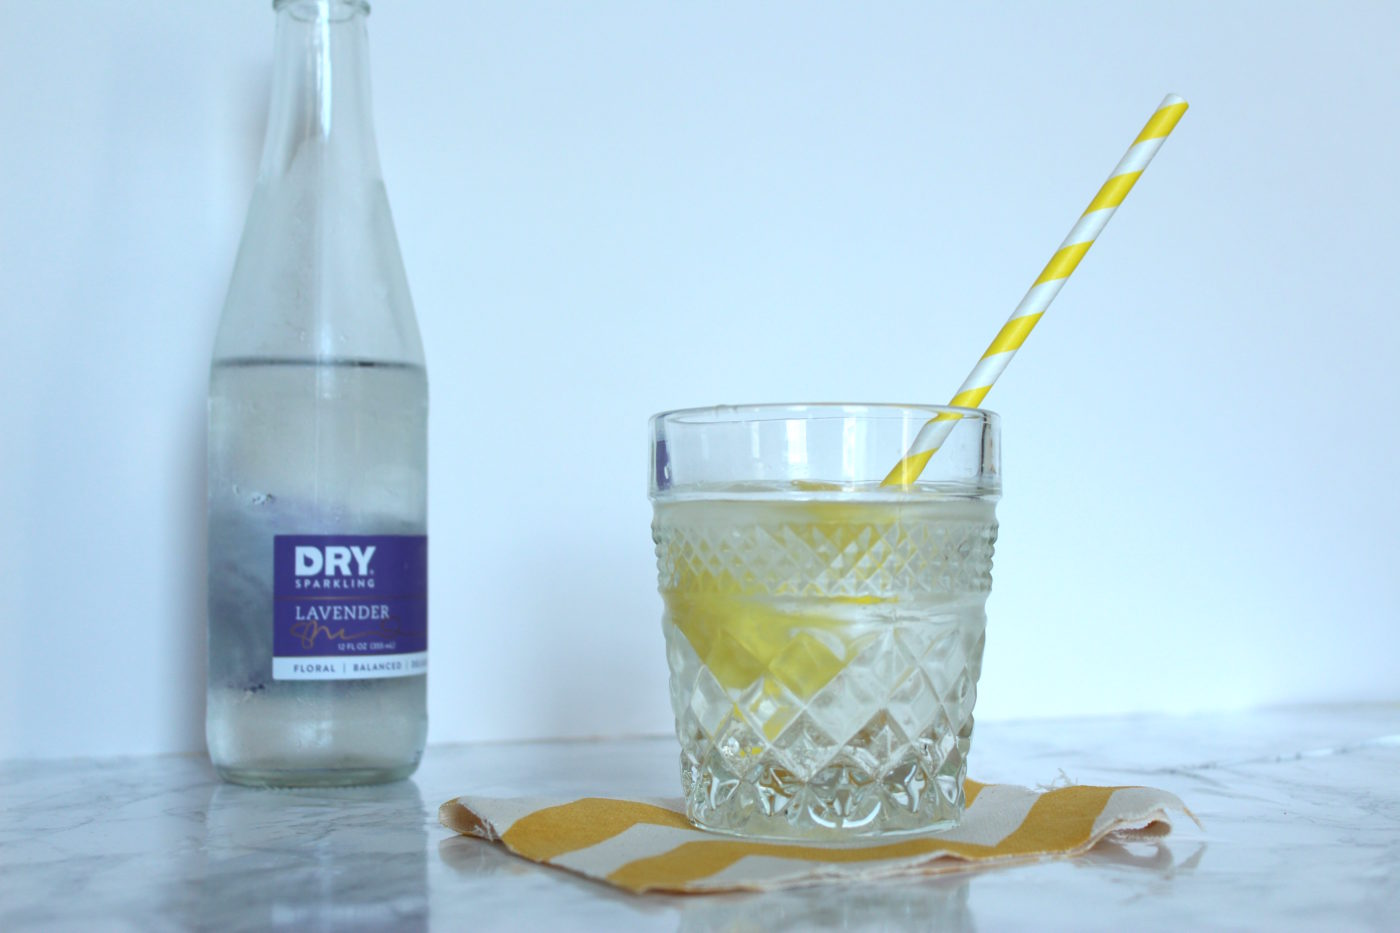 Dry Sparkling soda has a variety of flavors that would be great in a cocktail.